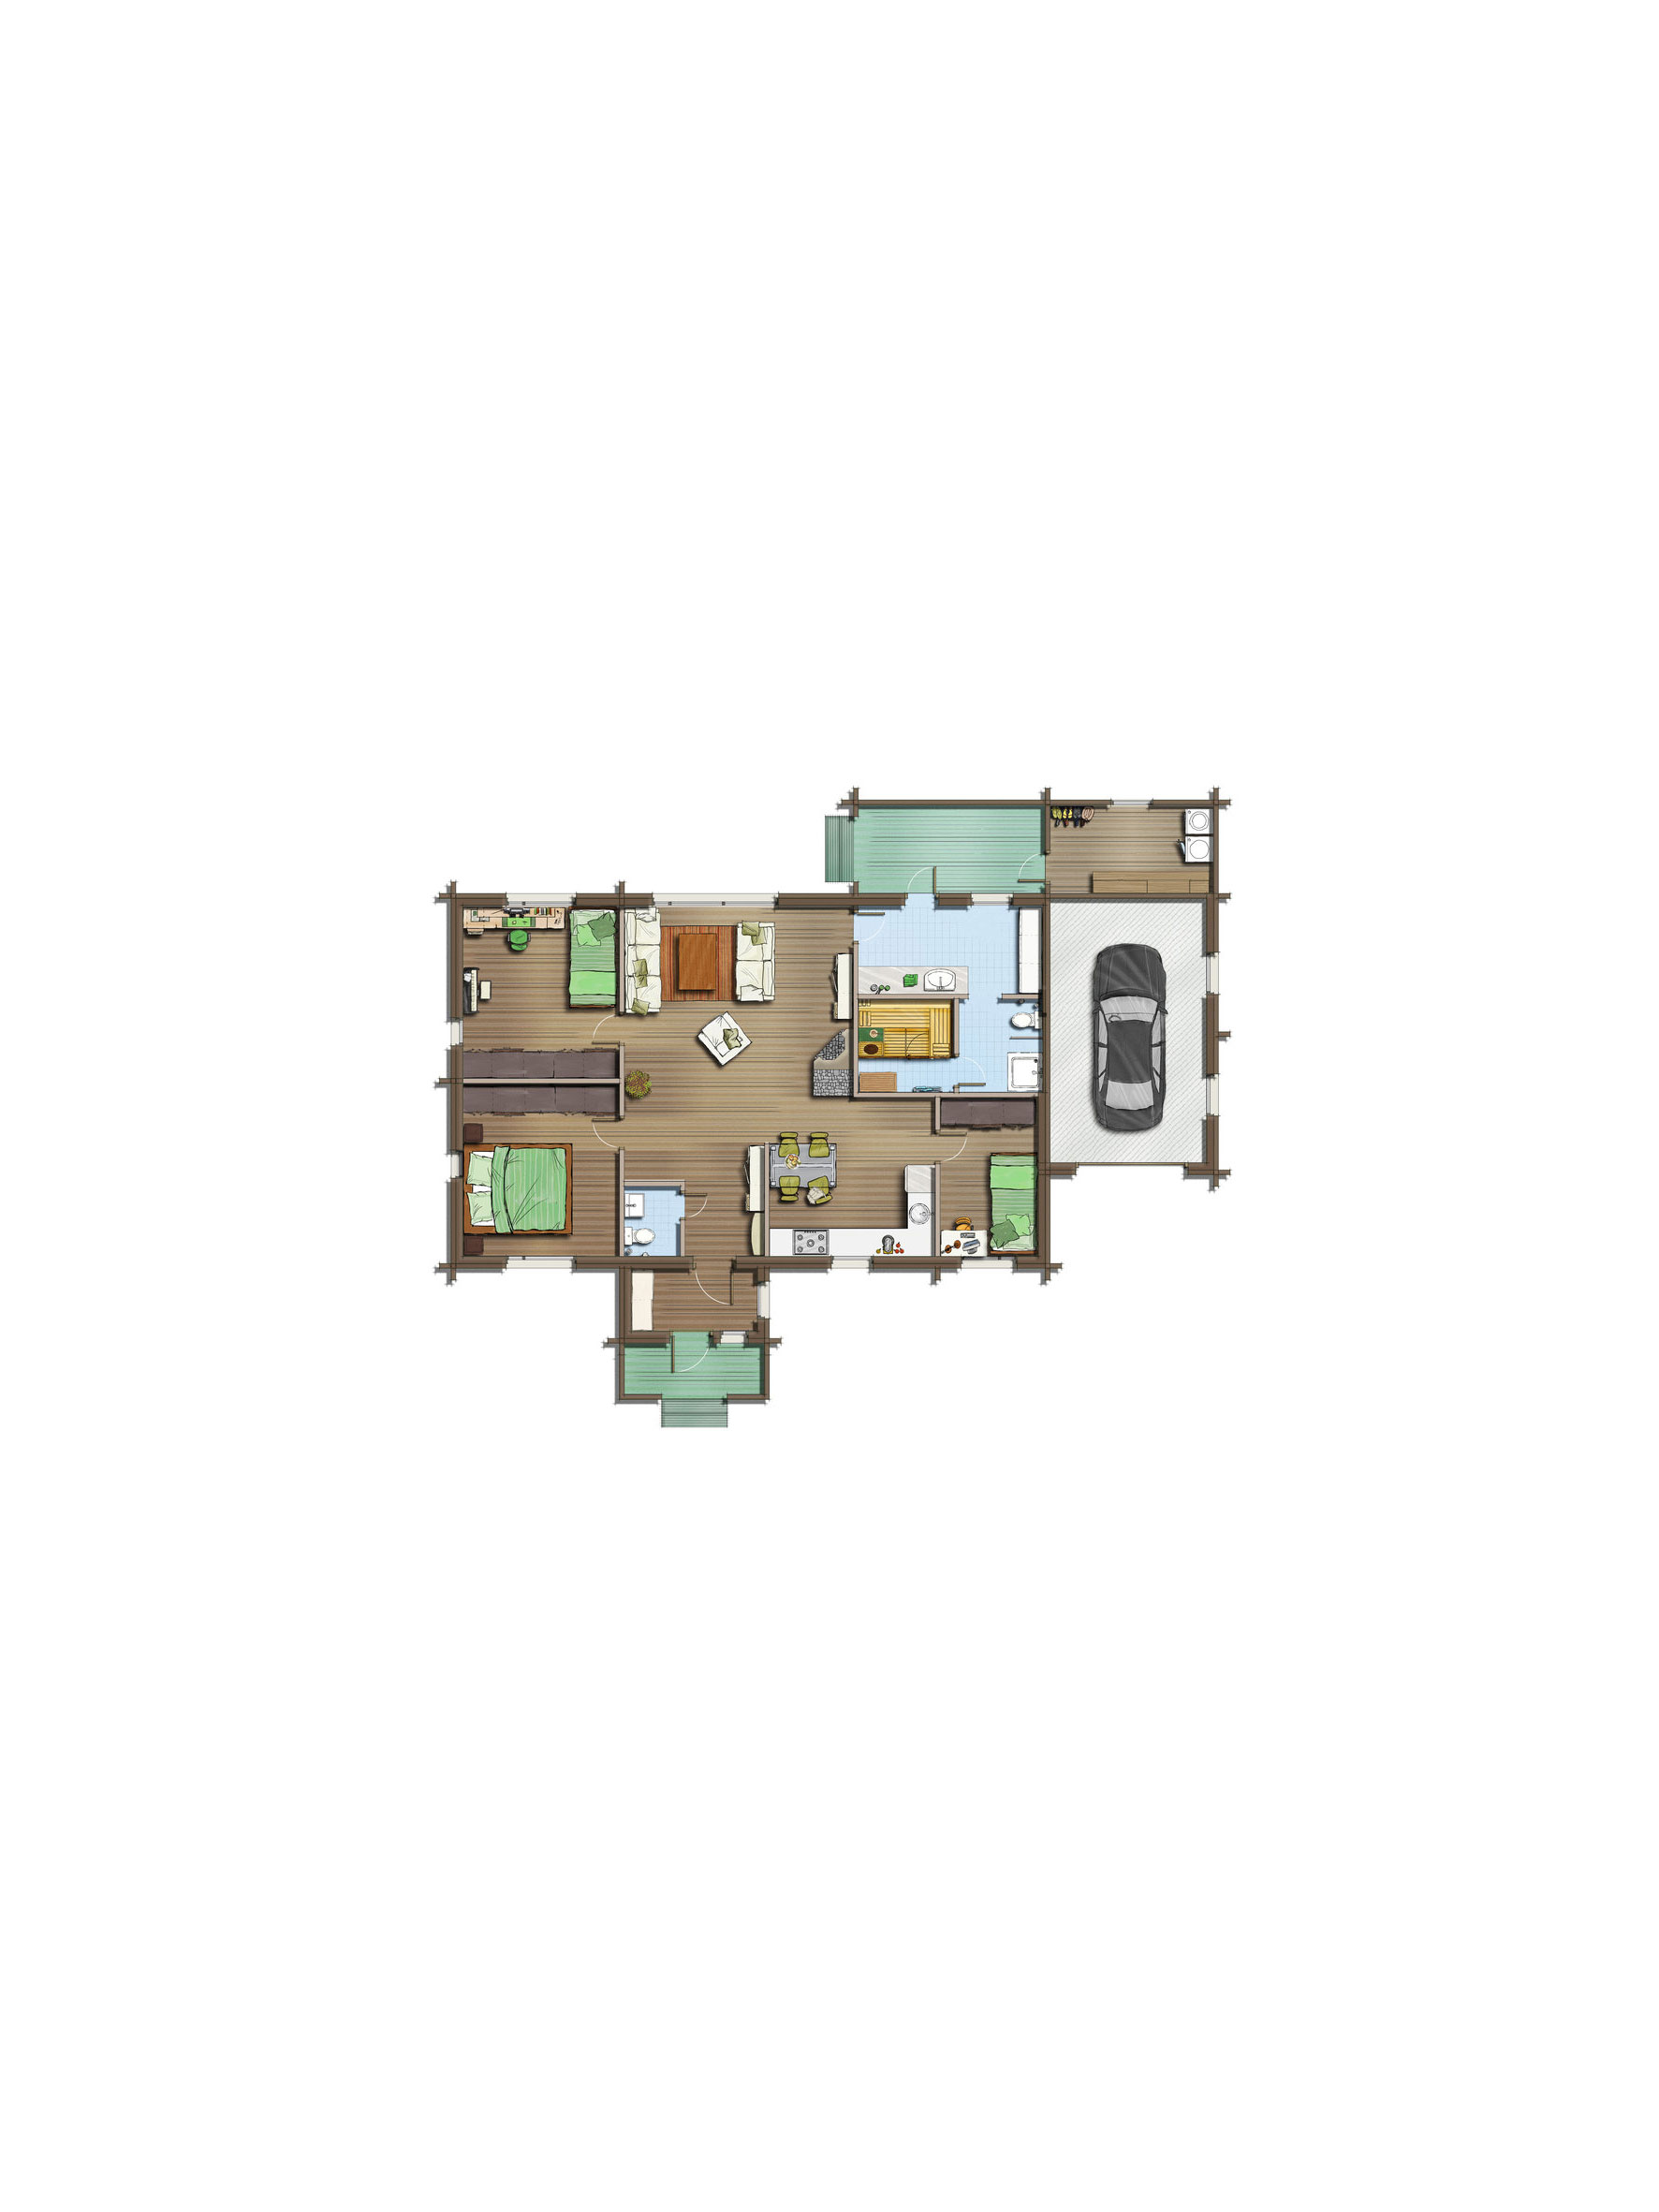 2floor_plan_2d_by_talens3d-d51ymzg